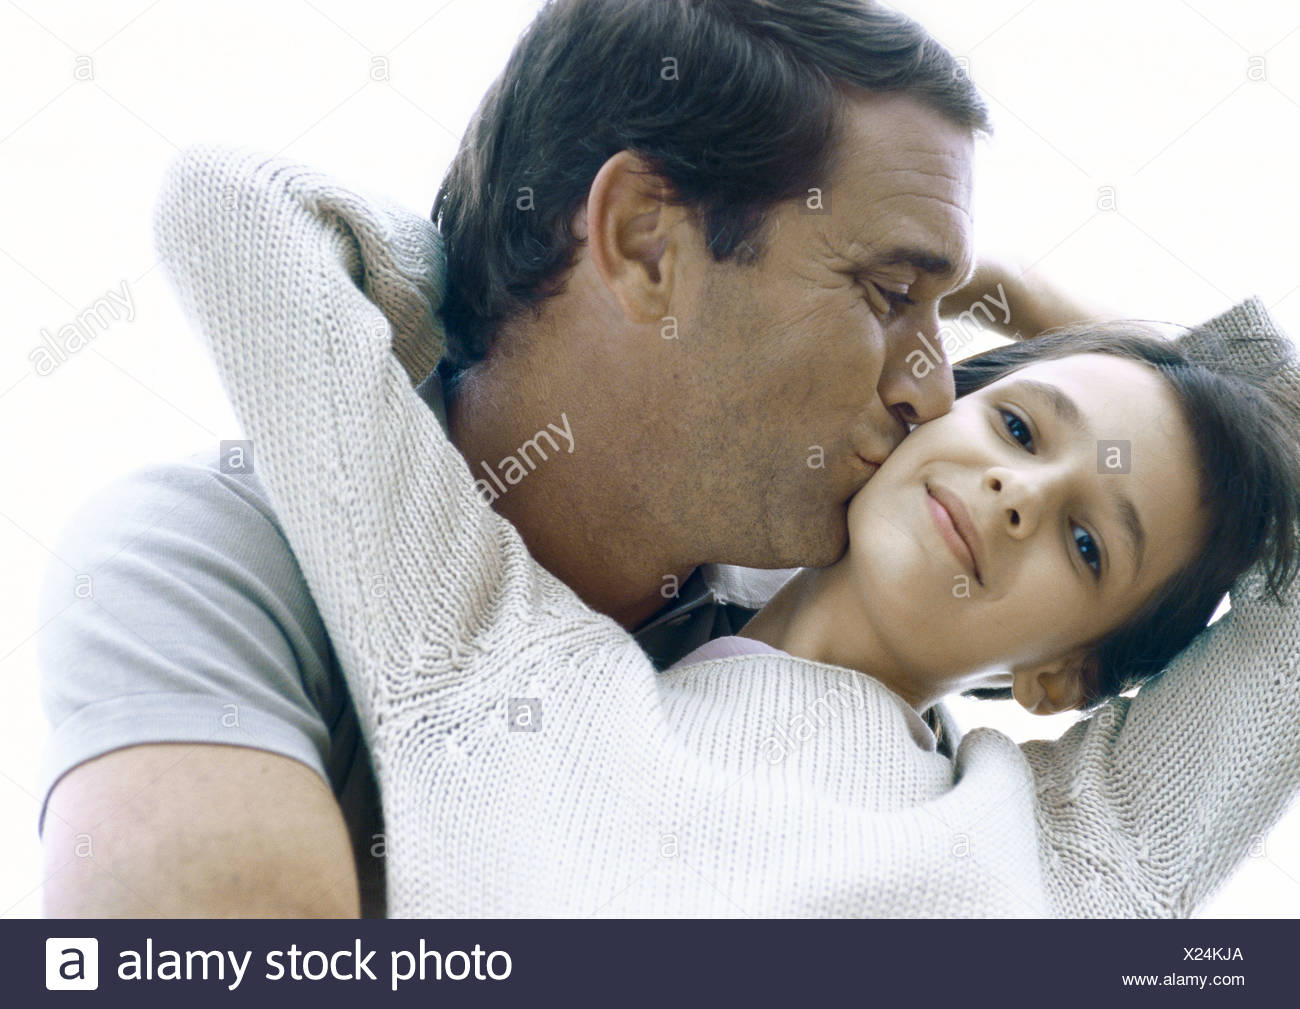 Girl reaching arms back around father's neck, father kissing girl's cheek - Stock Image